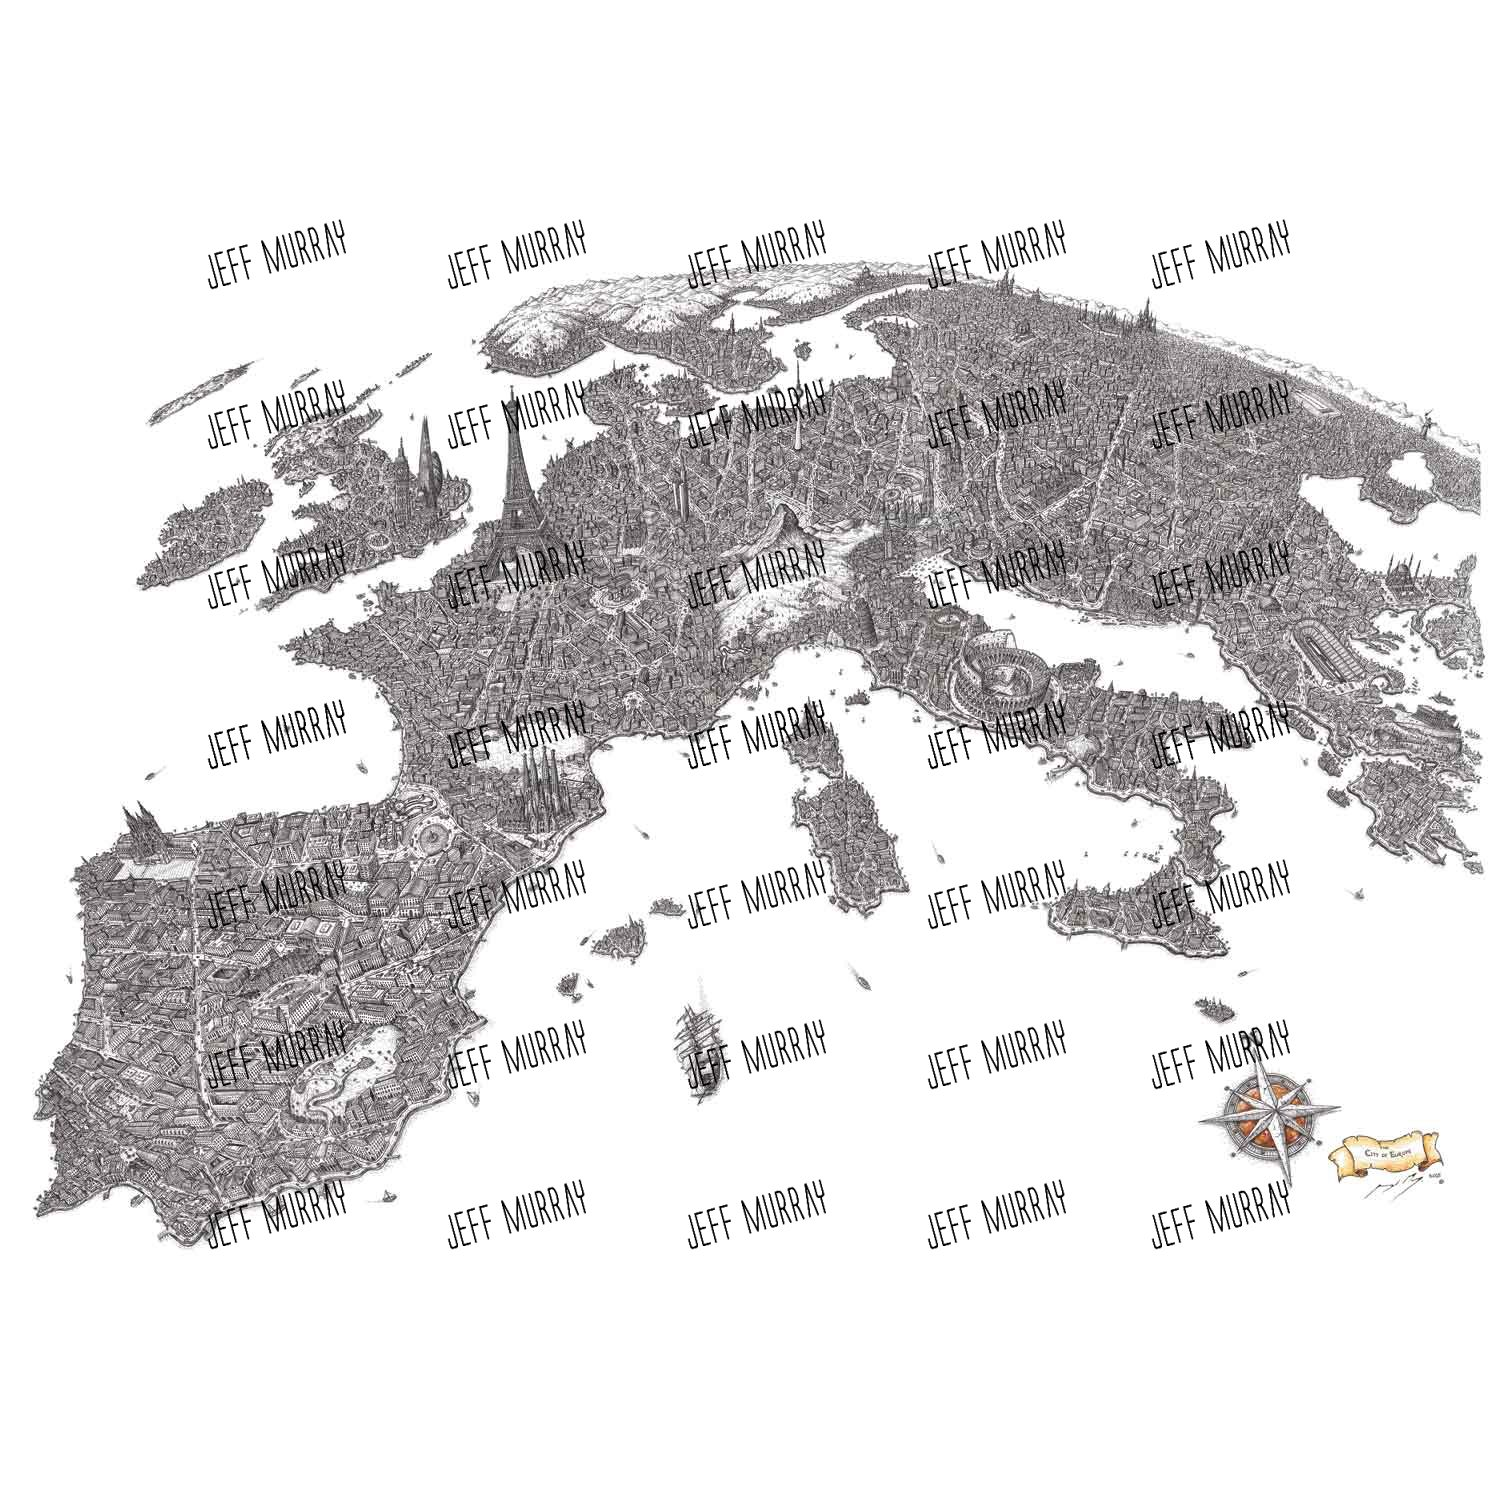 The City of Europe